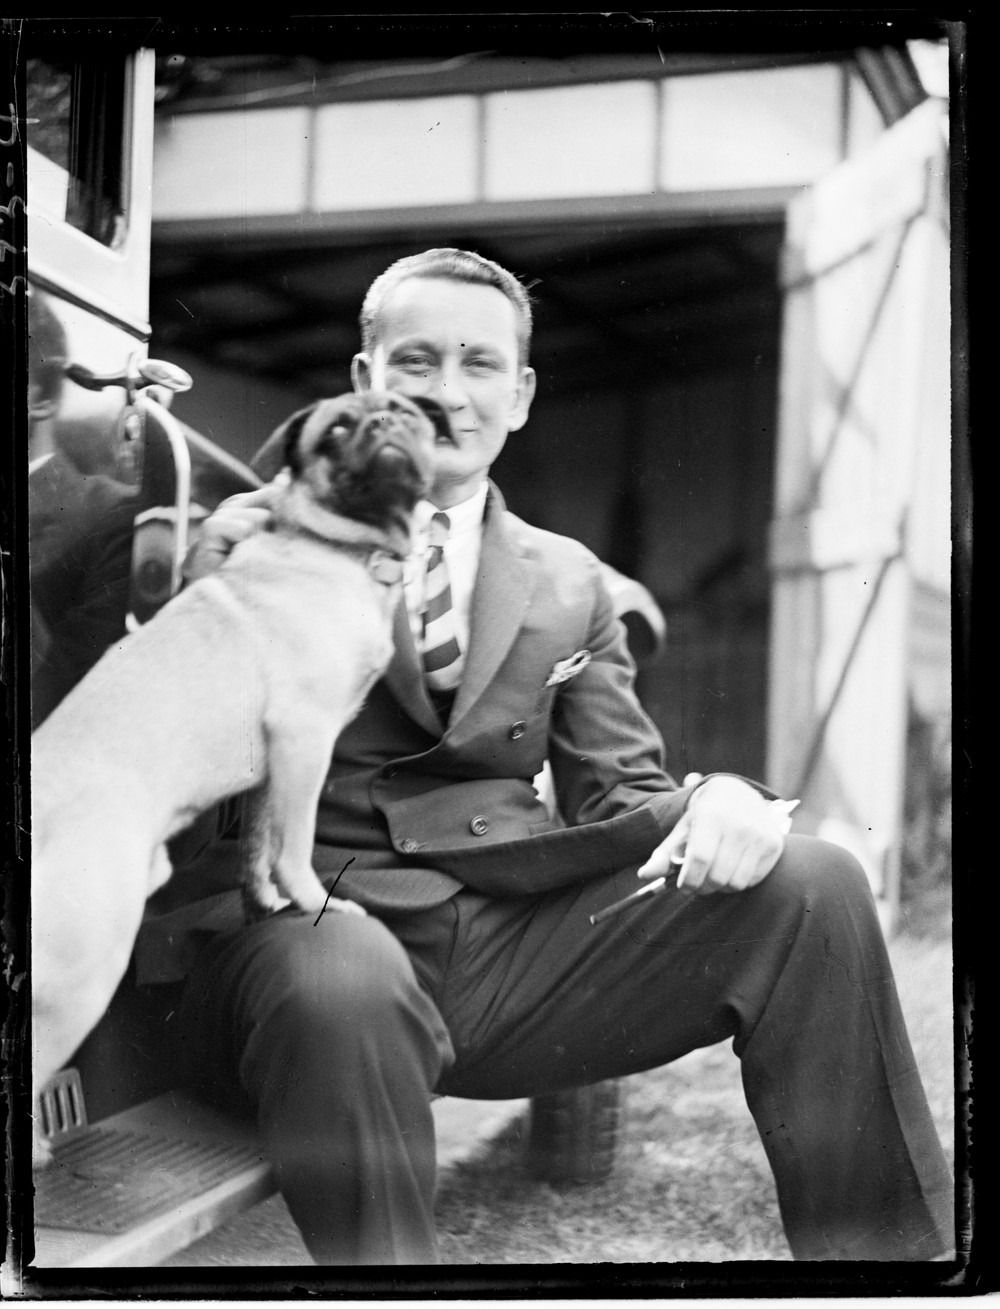 black and white photo of a man and a dog